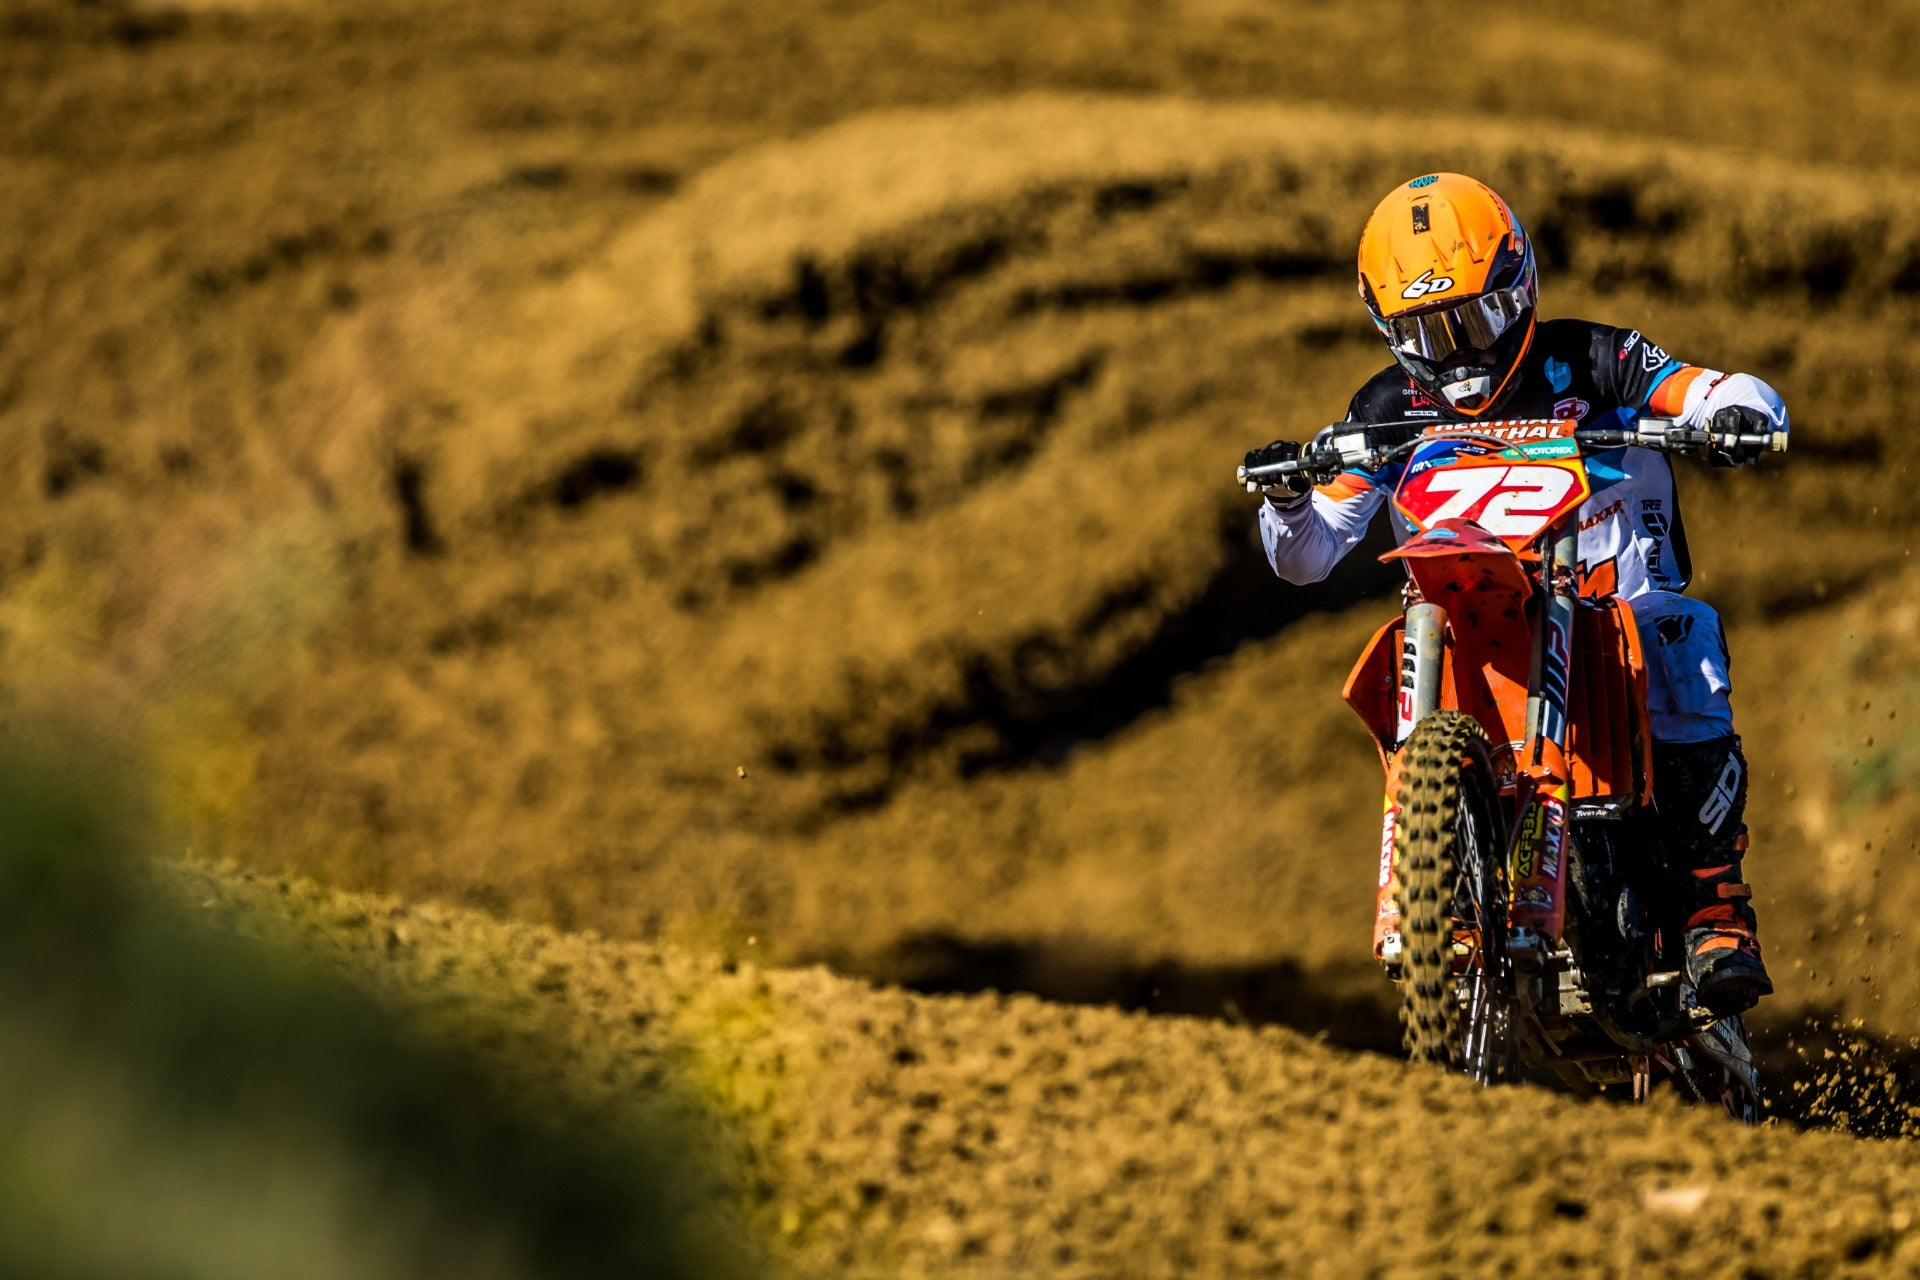 Liam Everts' Injury Update